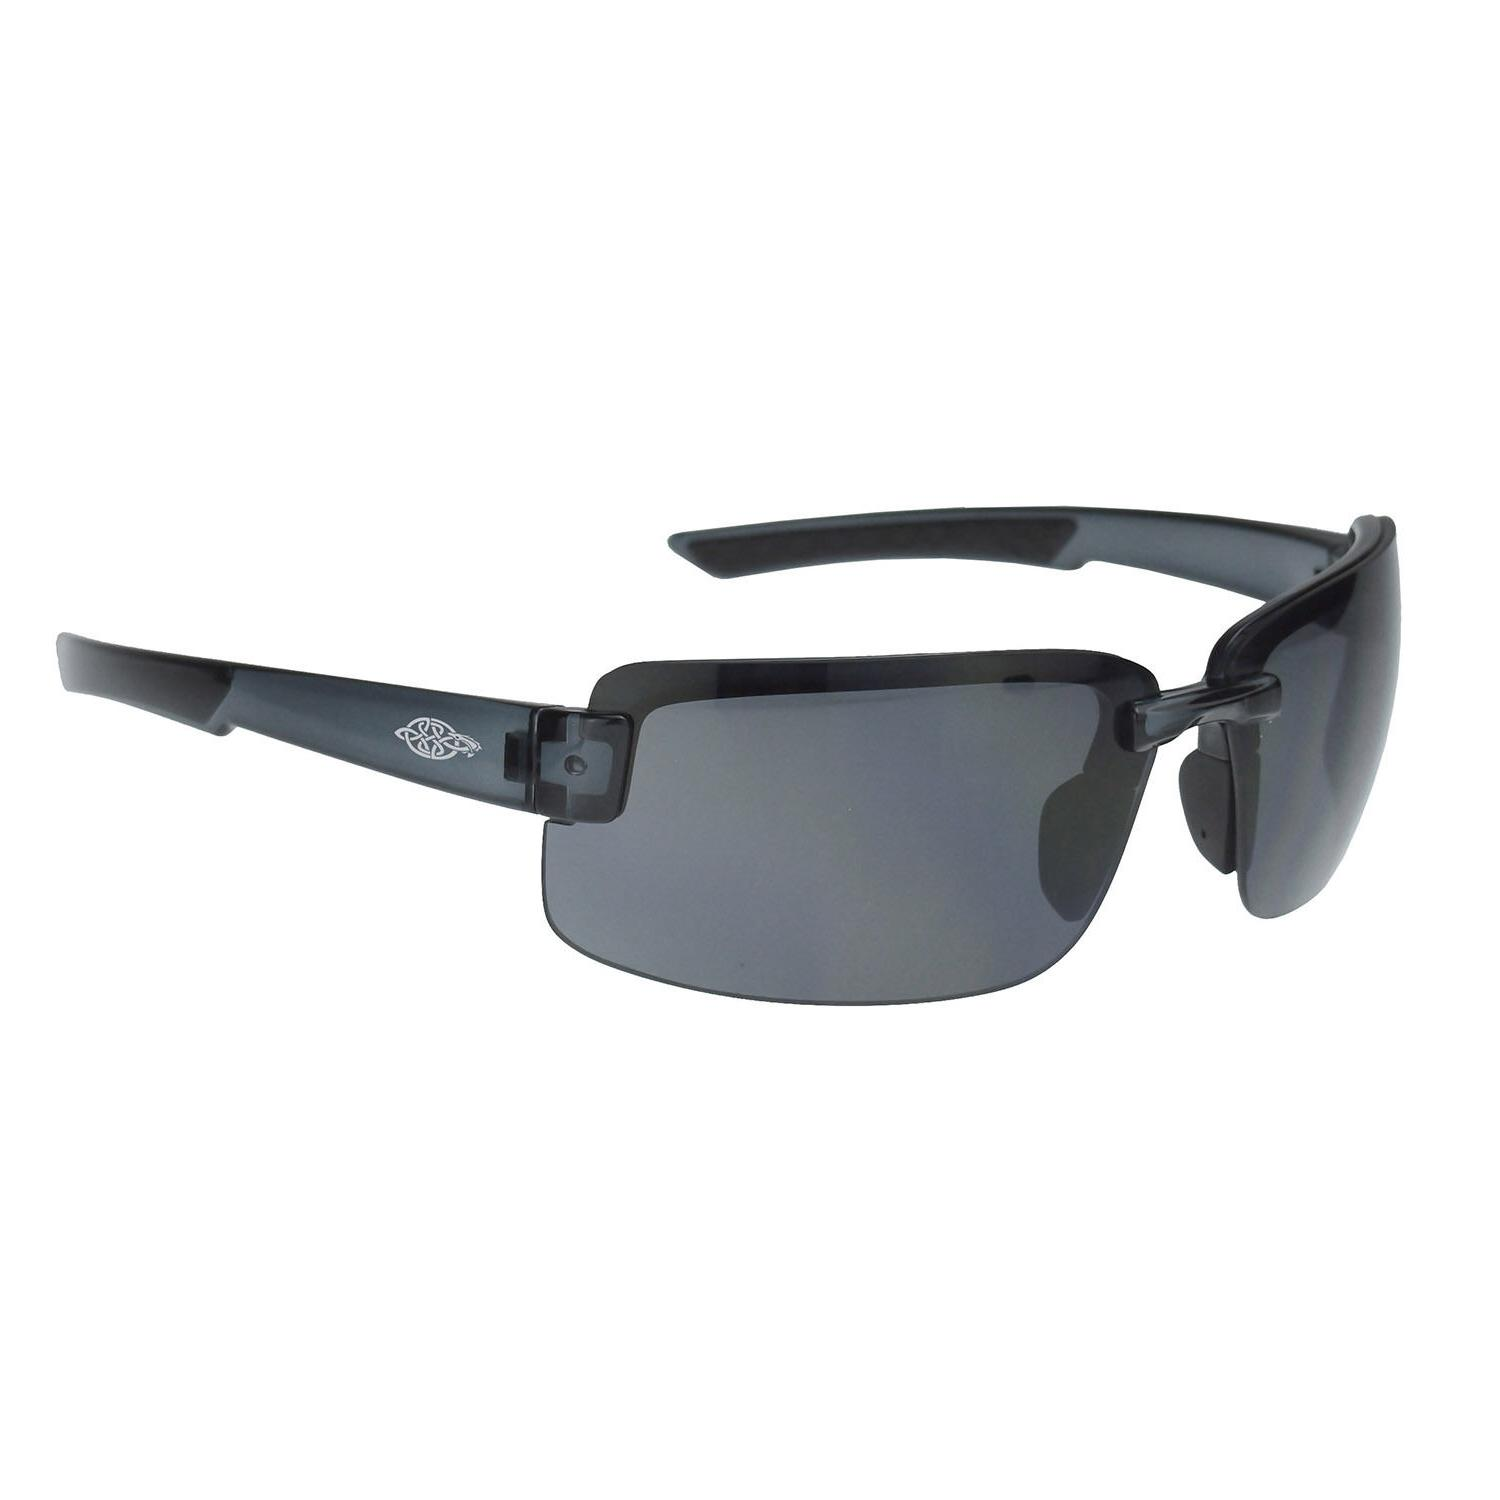 Crossfire By Radians 440401 ES6 Safety Glasses, HD Smoke Len